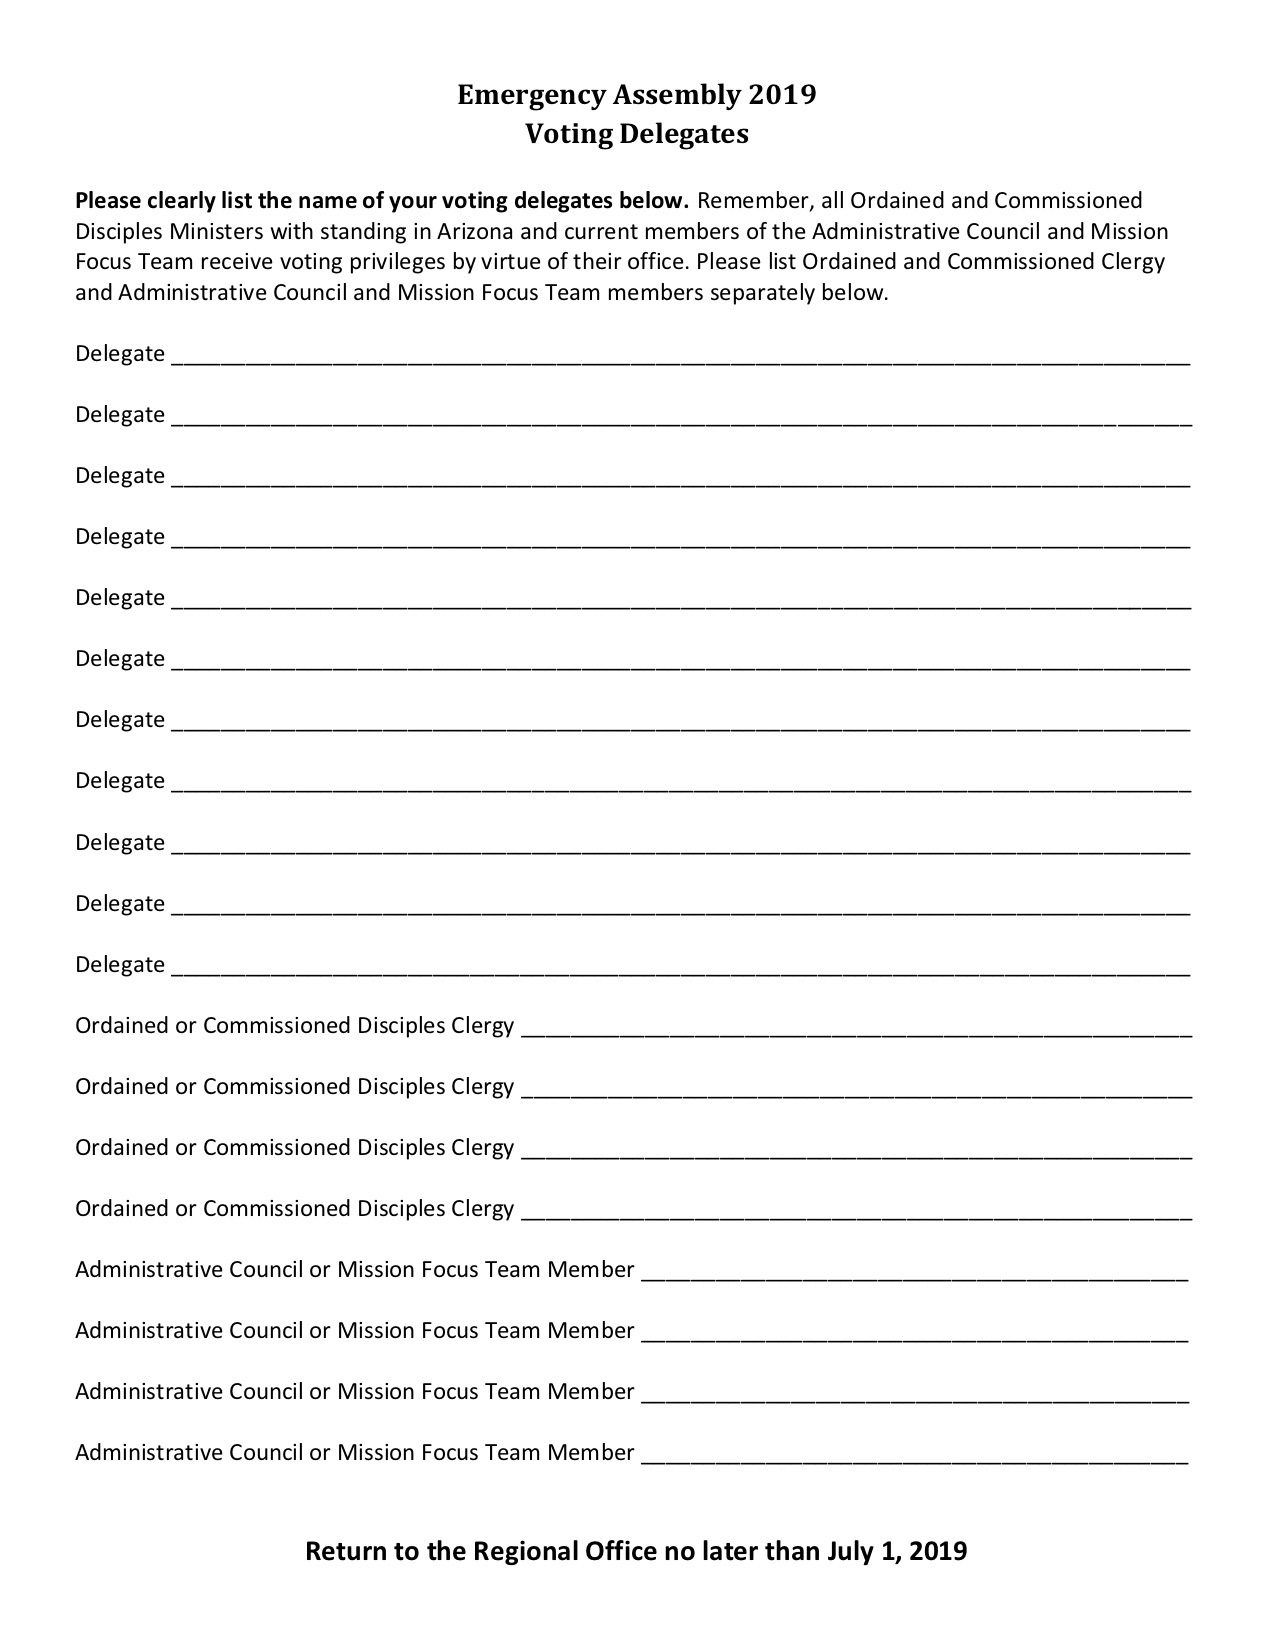 Emergency Assembly Voting Delegates Worksheet